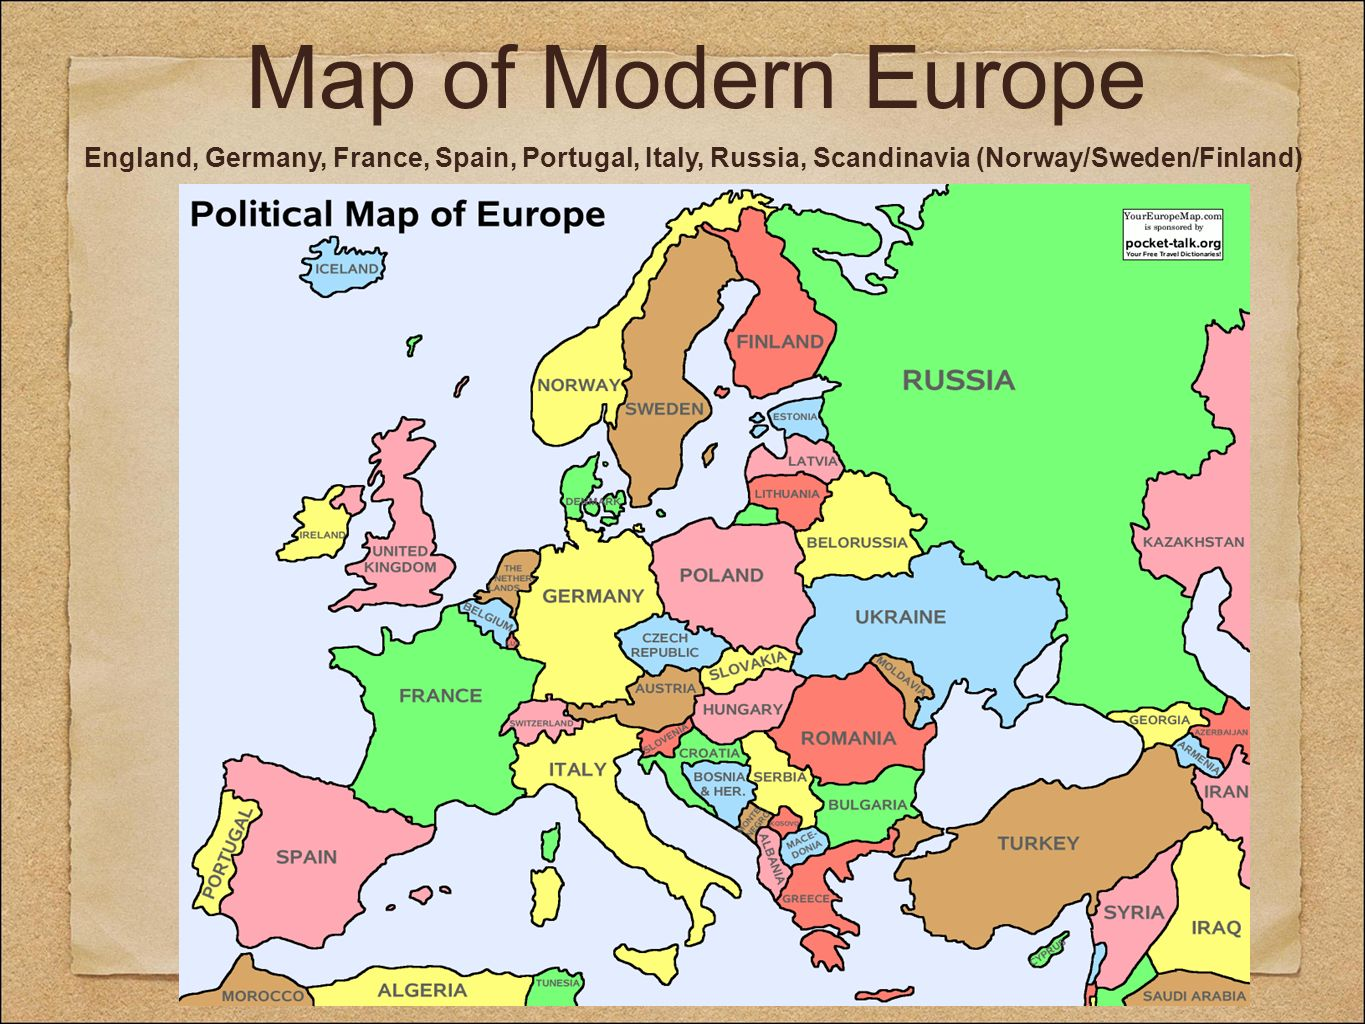 The Middle Ages Chapter Teacher Notes Ppt Video Online Download - Germany map middle ages